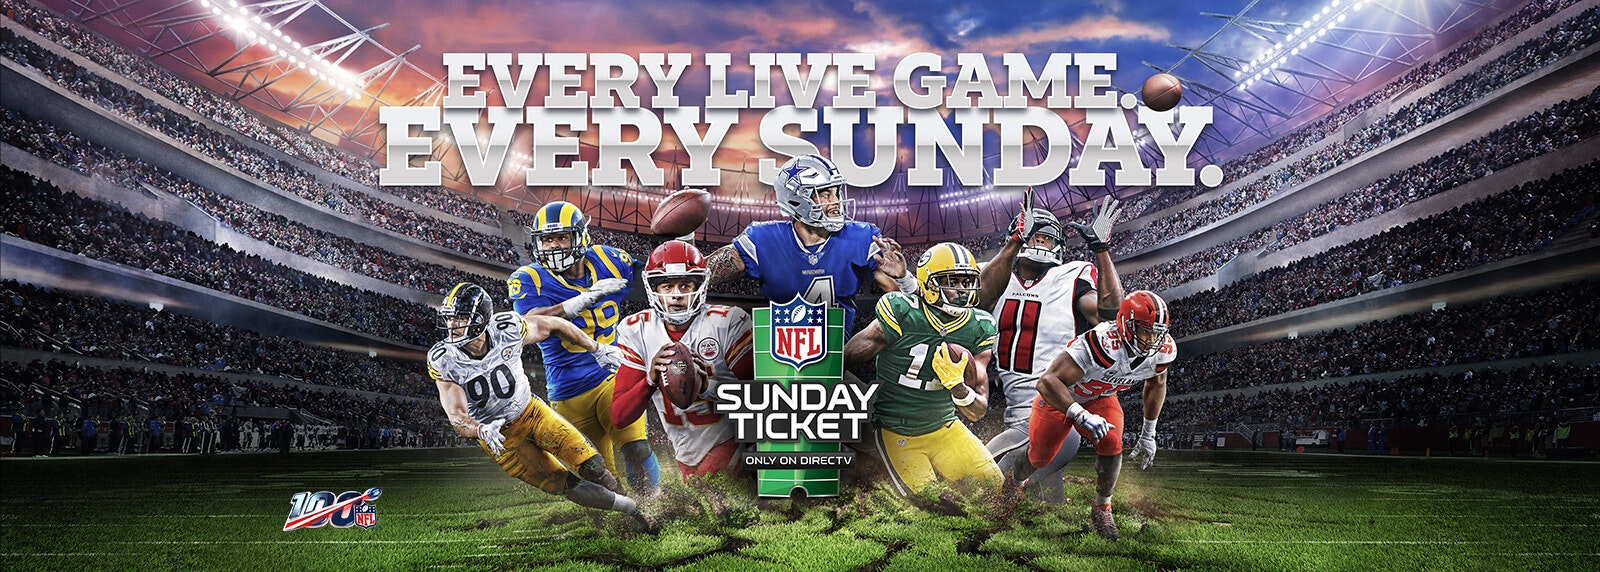 watch rams vs falcons live stream nfl sunday ticket